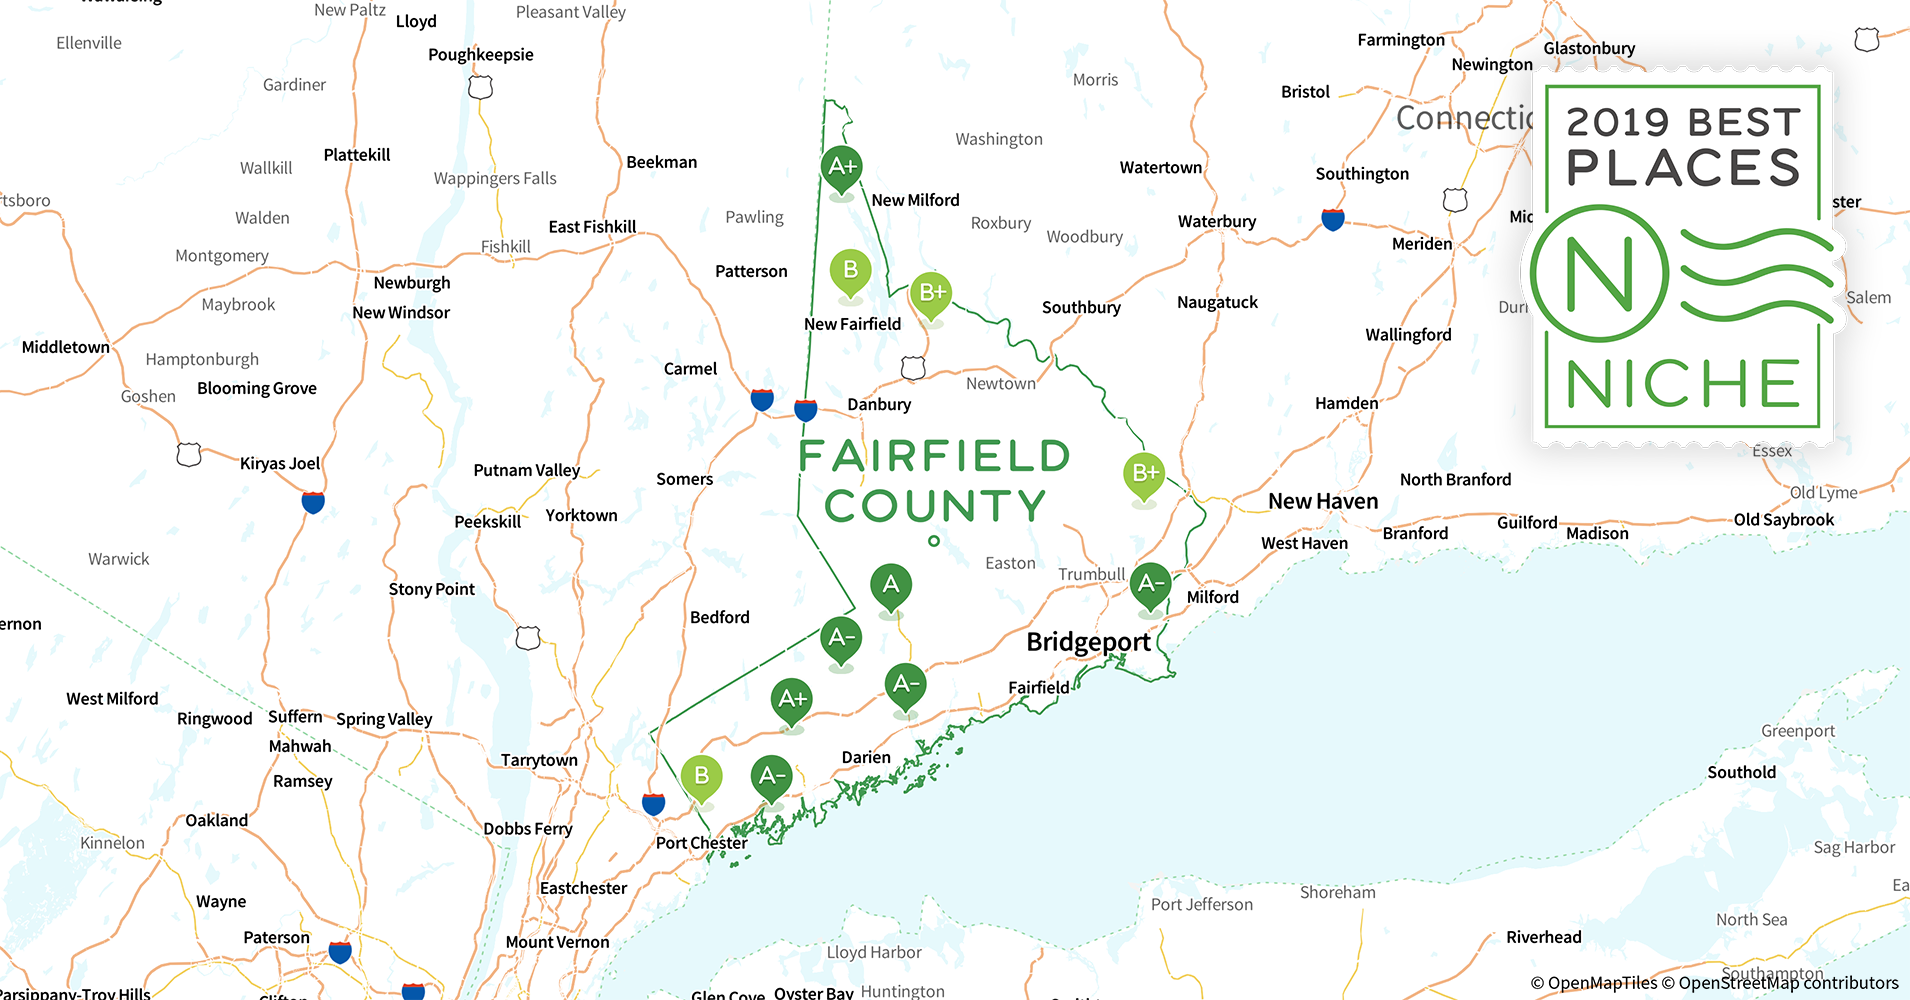 2019 Safe Places to Live in Fairfield County, CT - Niche